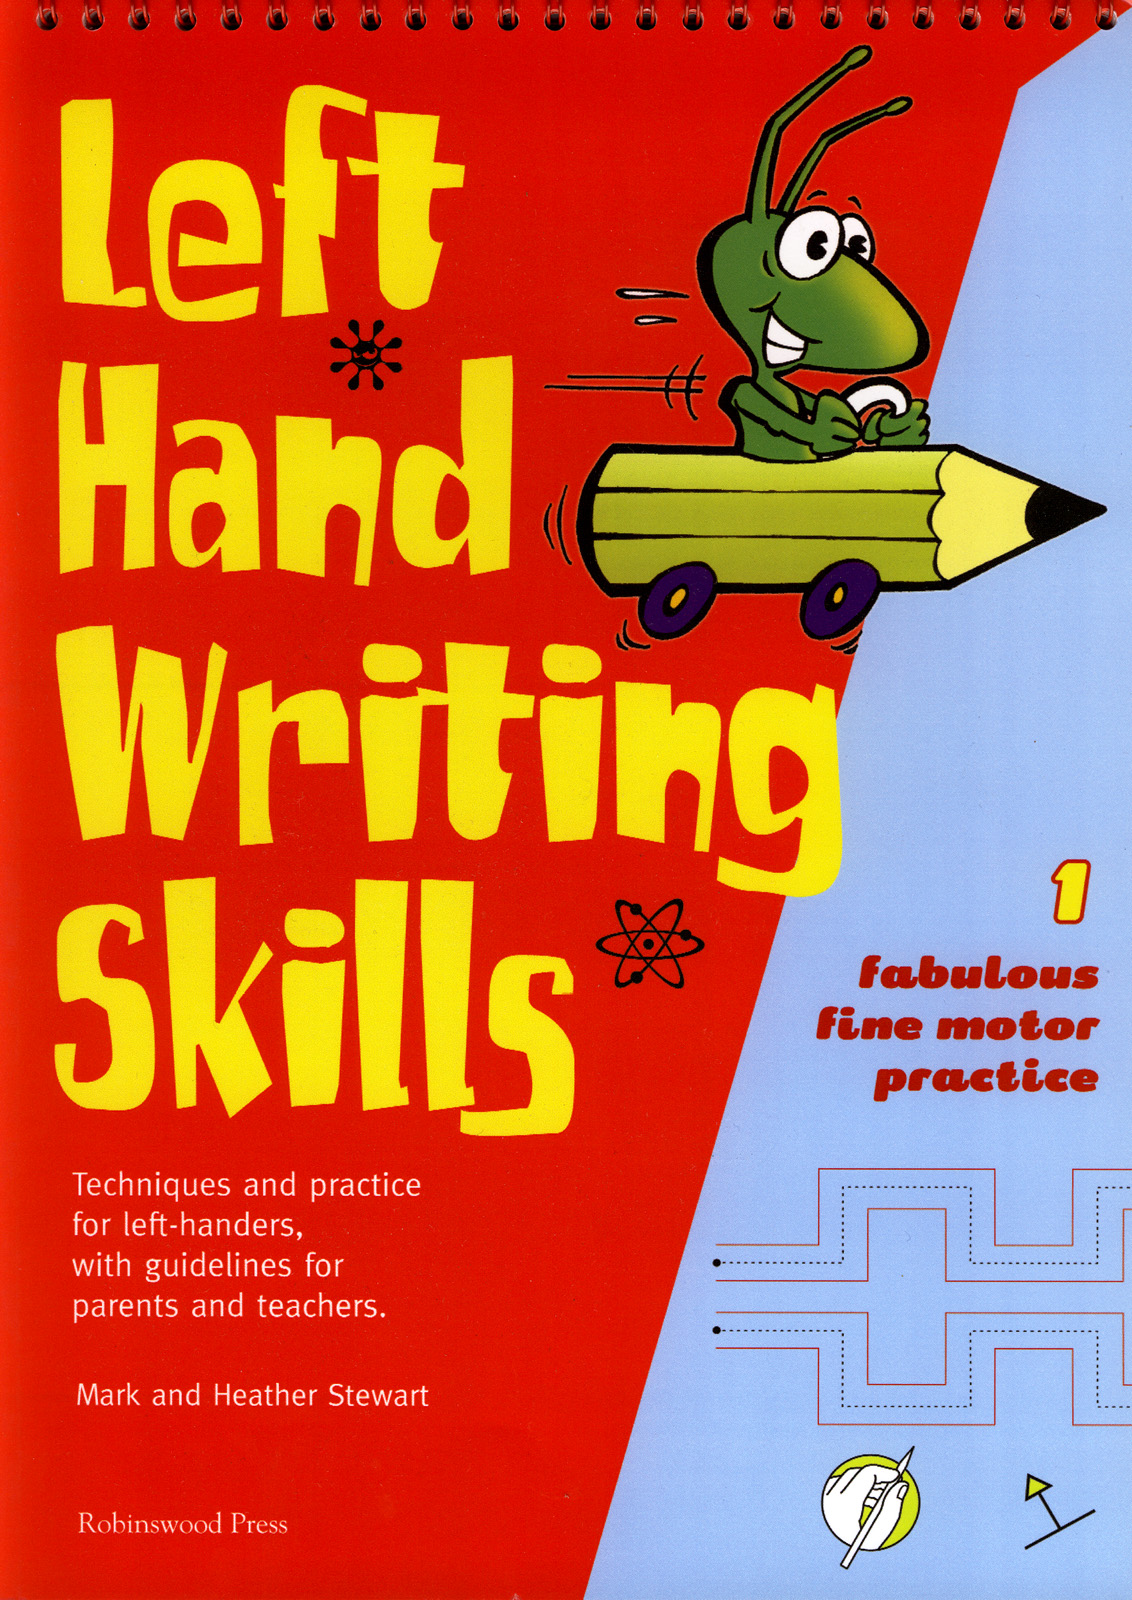 Left Handed Images For Publication